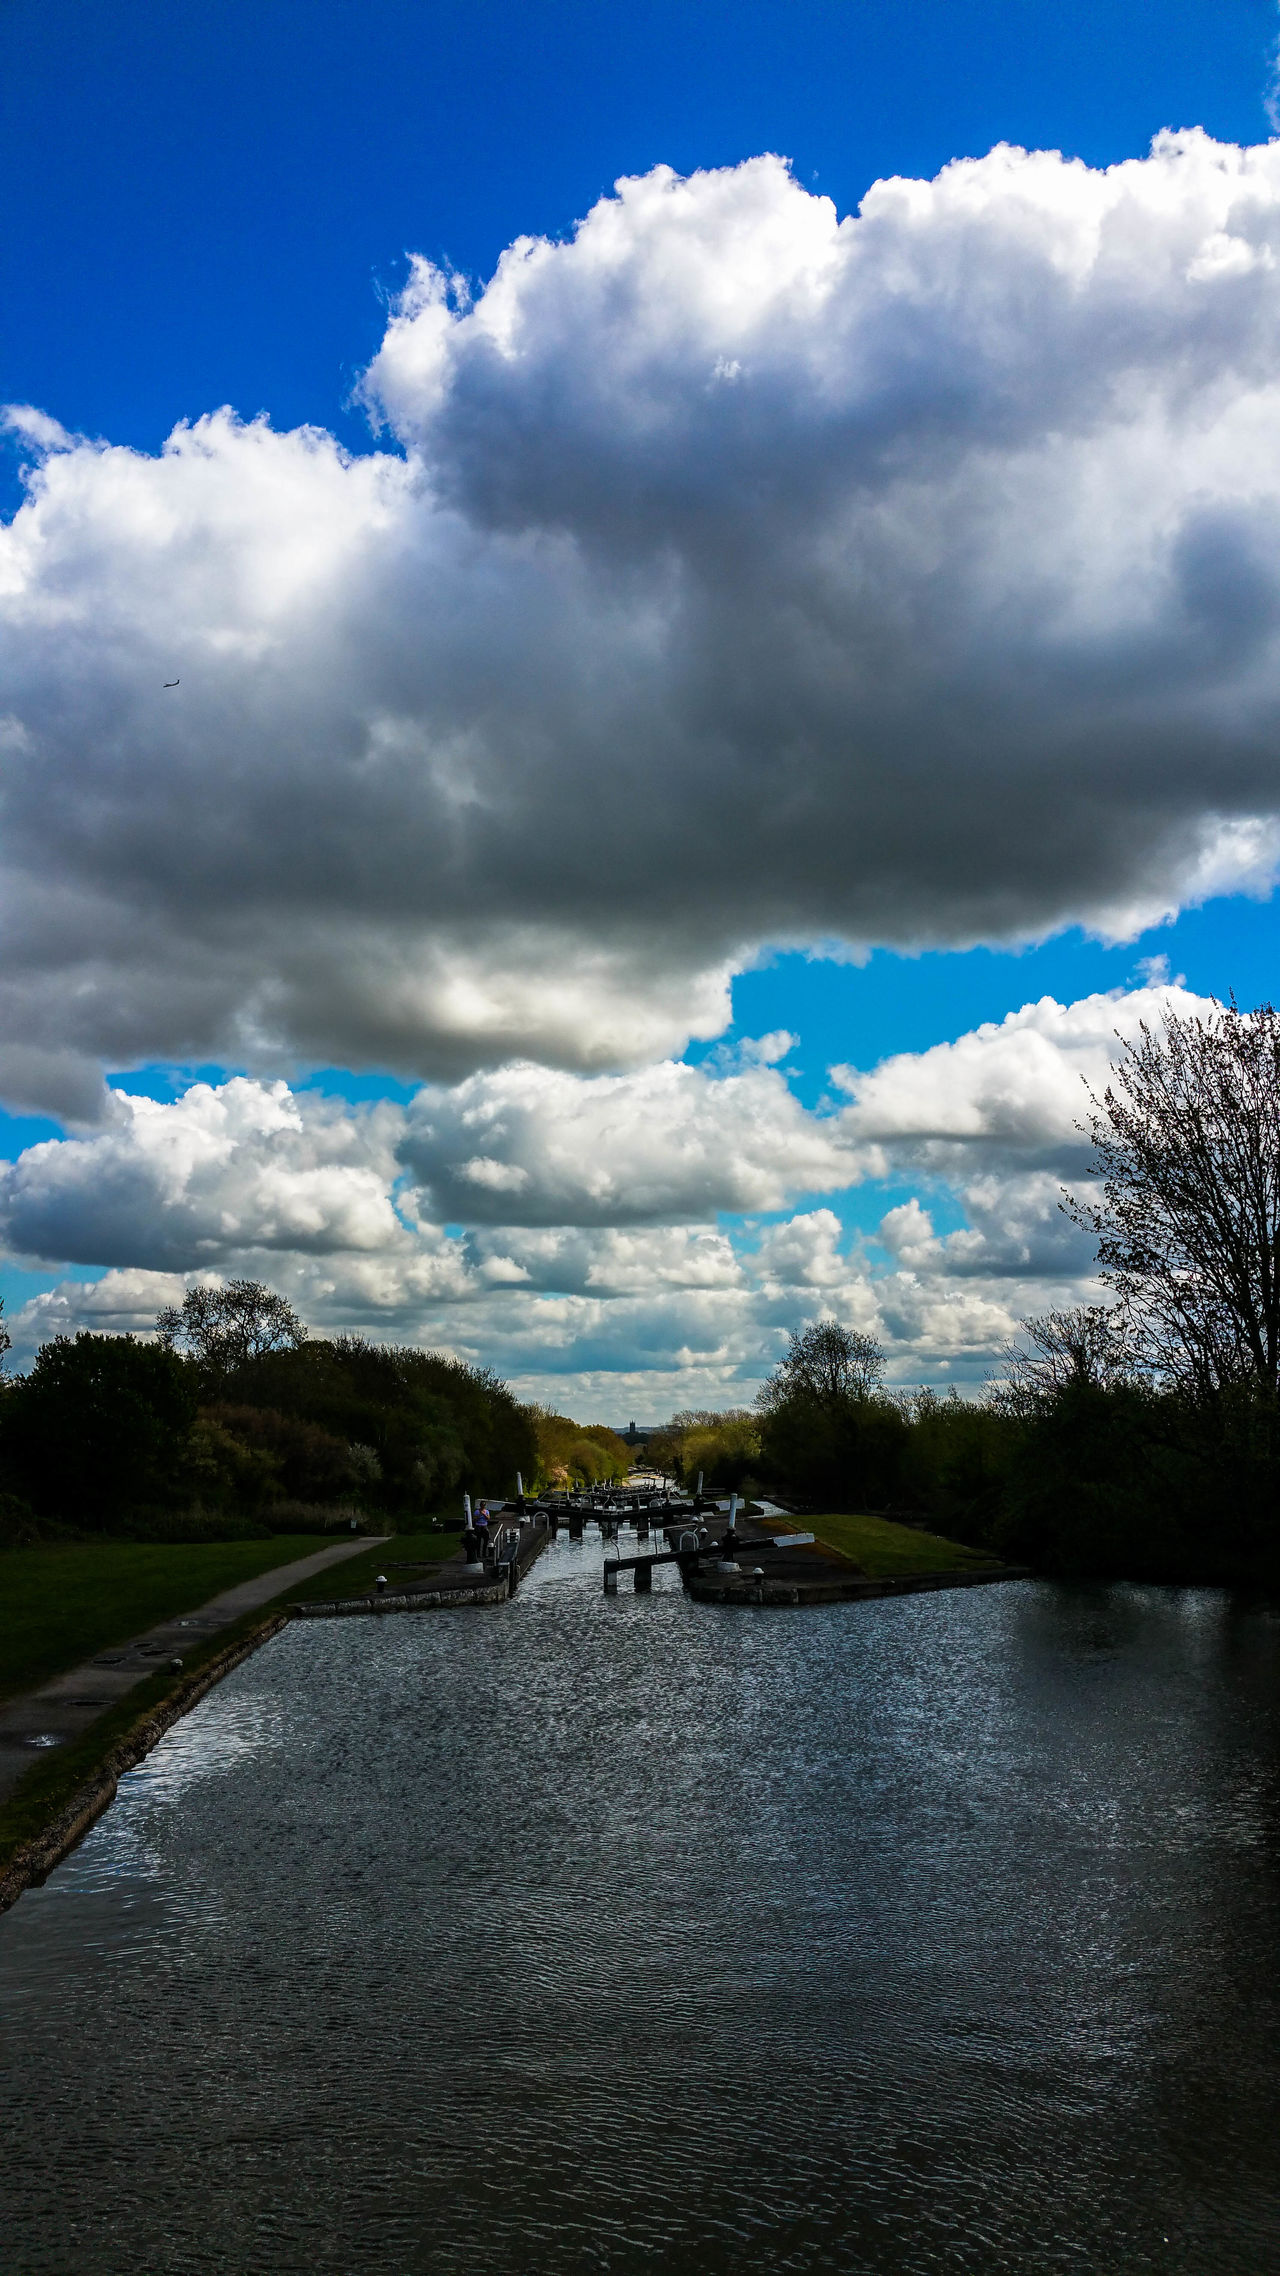 Blue Canal Canal Adventure Canals And Waterways Cloud Cloud - Sky Cloudy Locks Nature No People River Sky Tranquil Scene Water